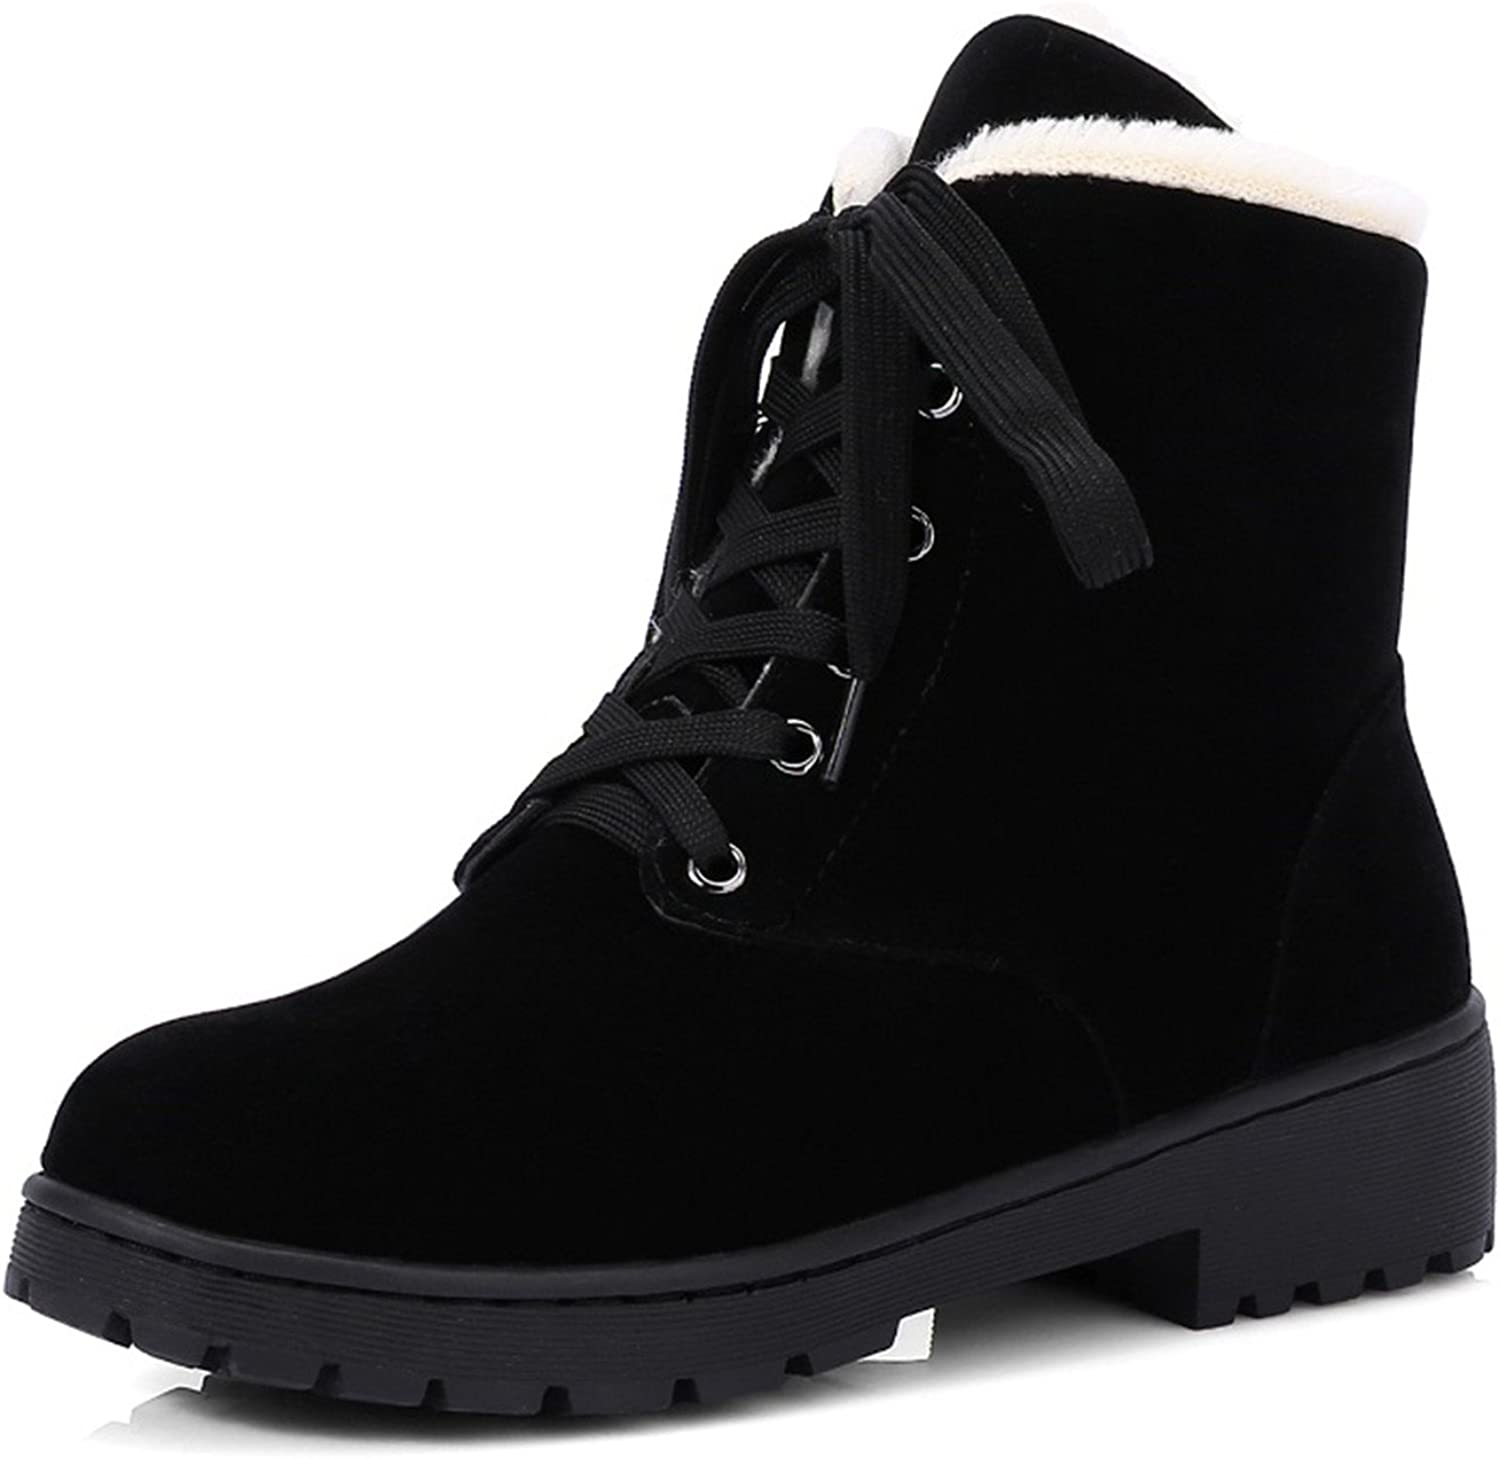 Thytas Solid Anti-Slip Snow Boots Plush Fur Inside Causal Mid Calf Lace Up shoes Women Winter Boots Warm